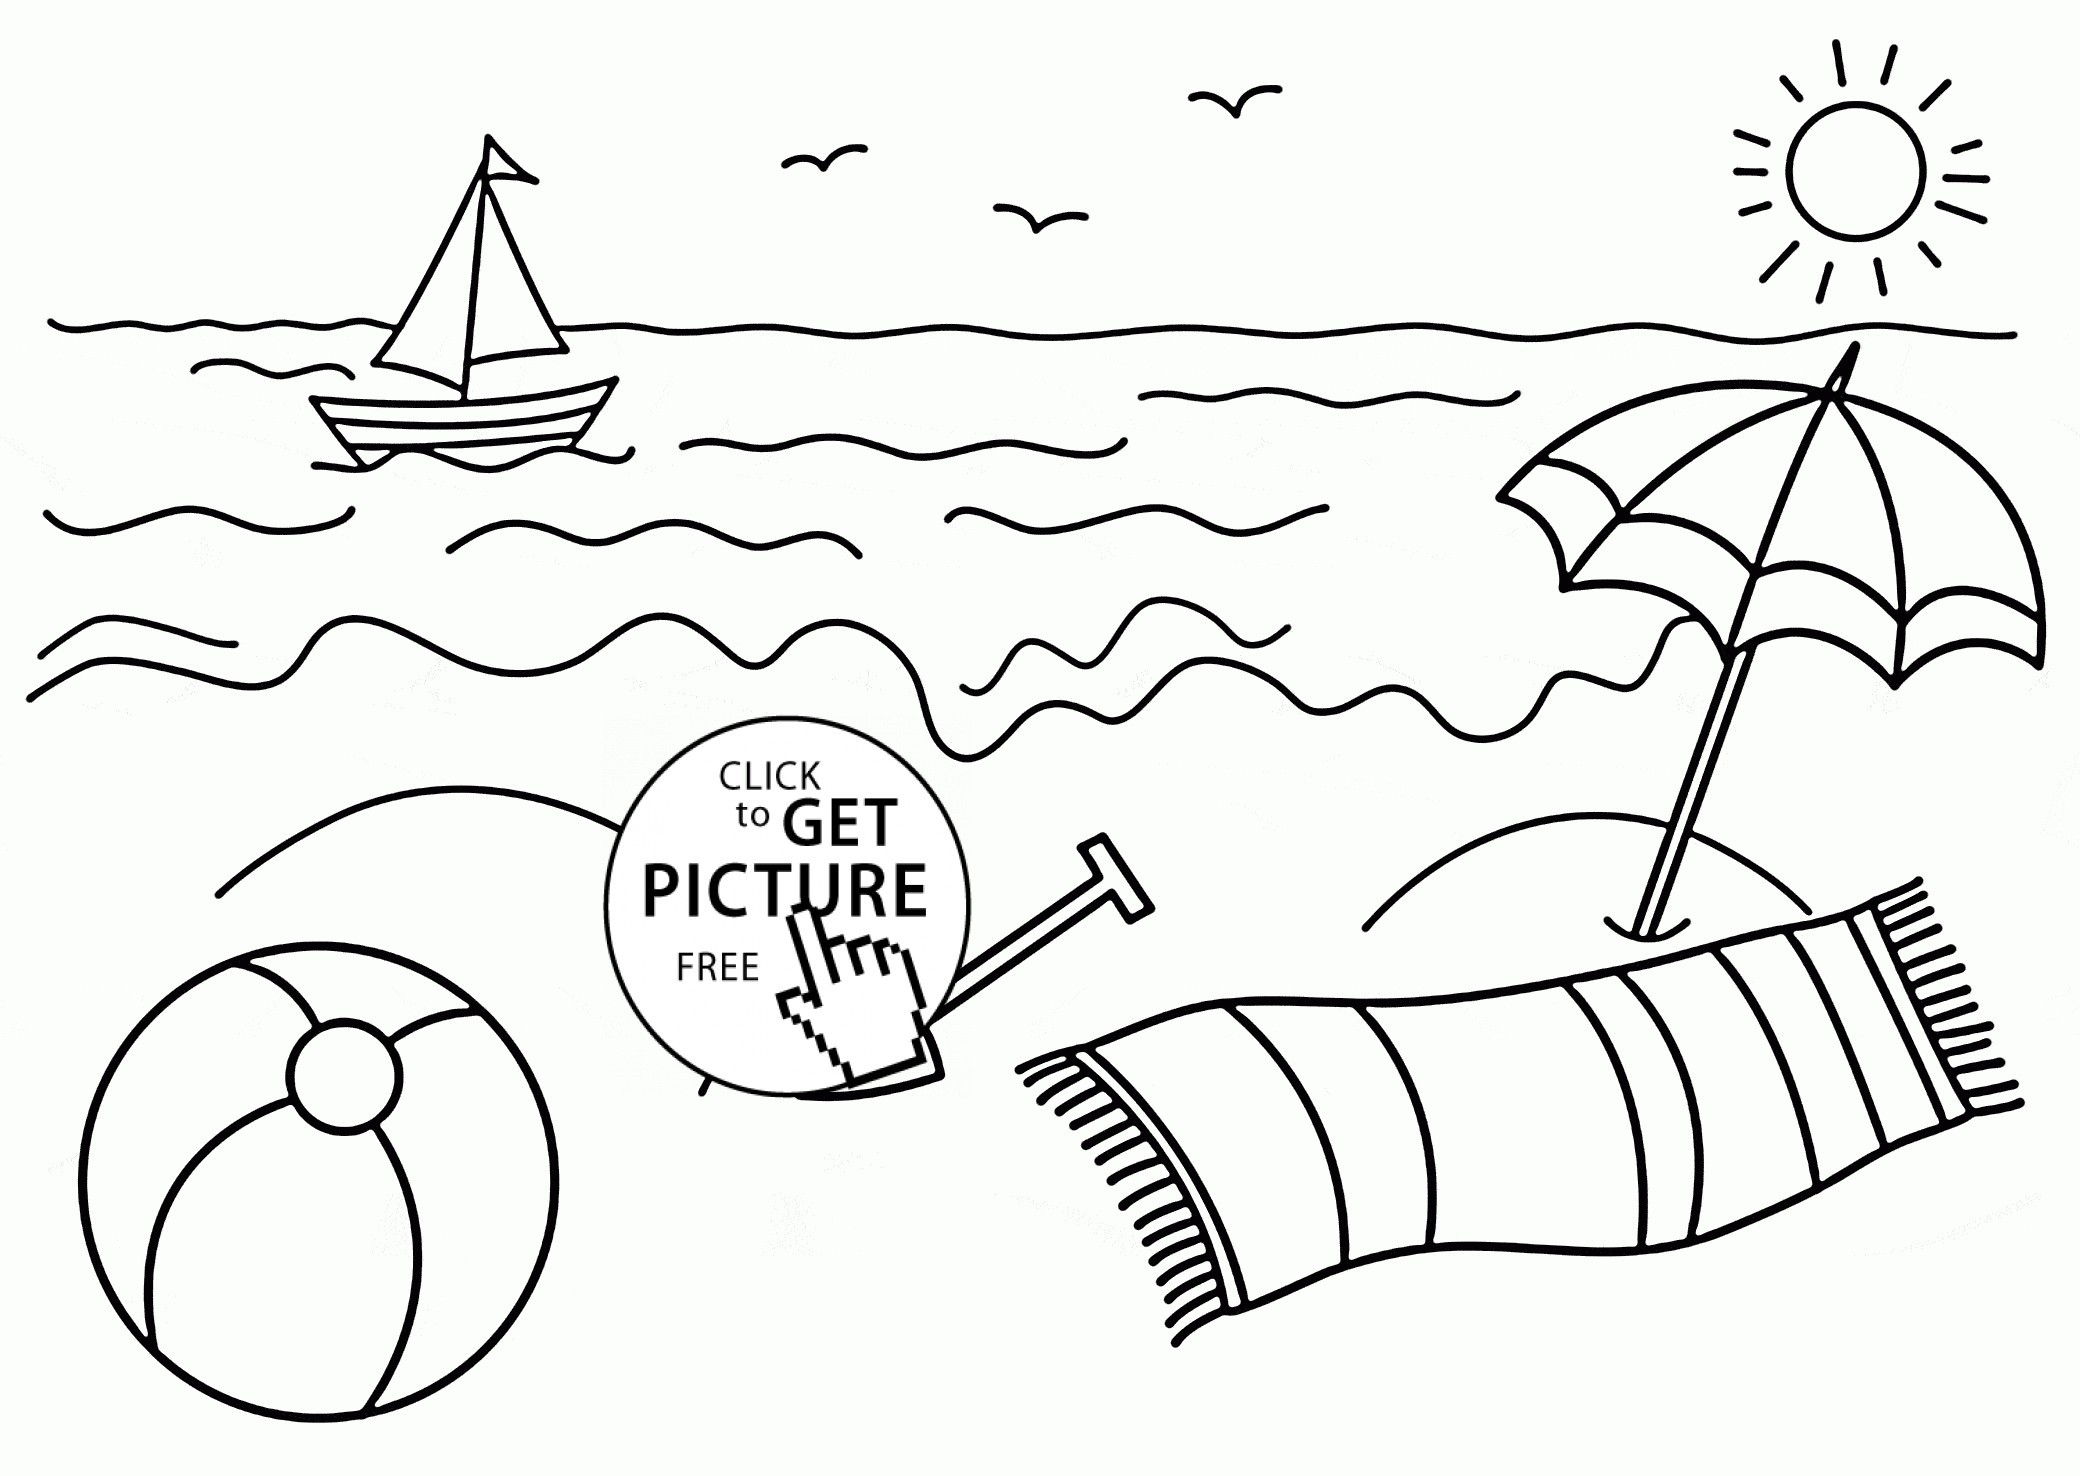 Coloring Pages Beach Theme New Free Printable Beach Coloring Pages - Free Printable Beach Coloring Pages